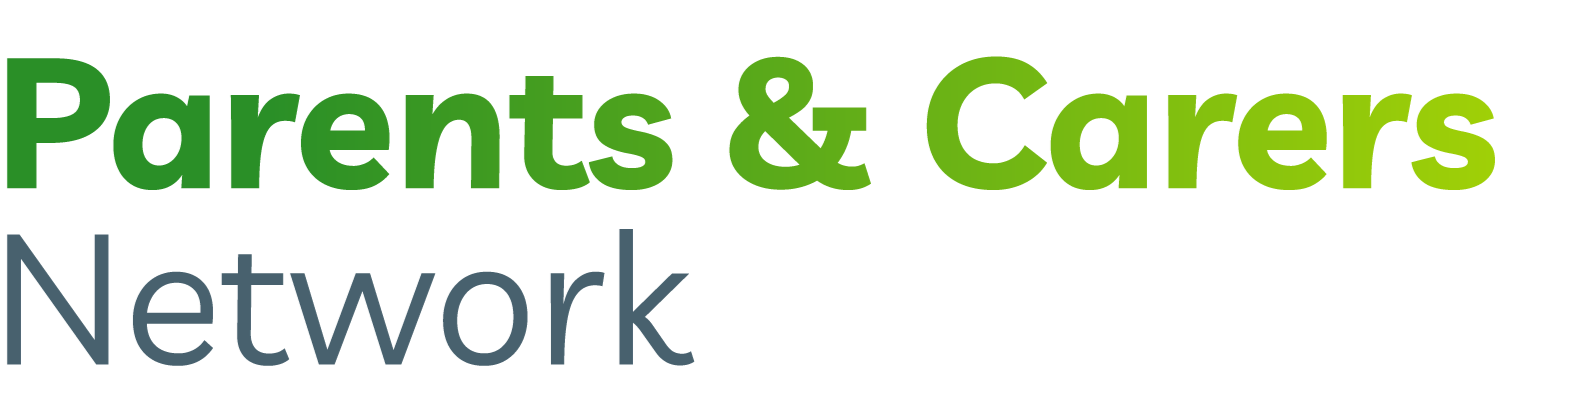 LV Jobs - Careers website - Inclusion and Wellbeing - Networks - Parents and Carers Network Logo.png